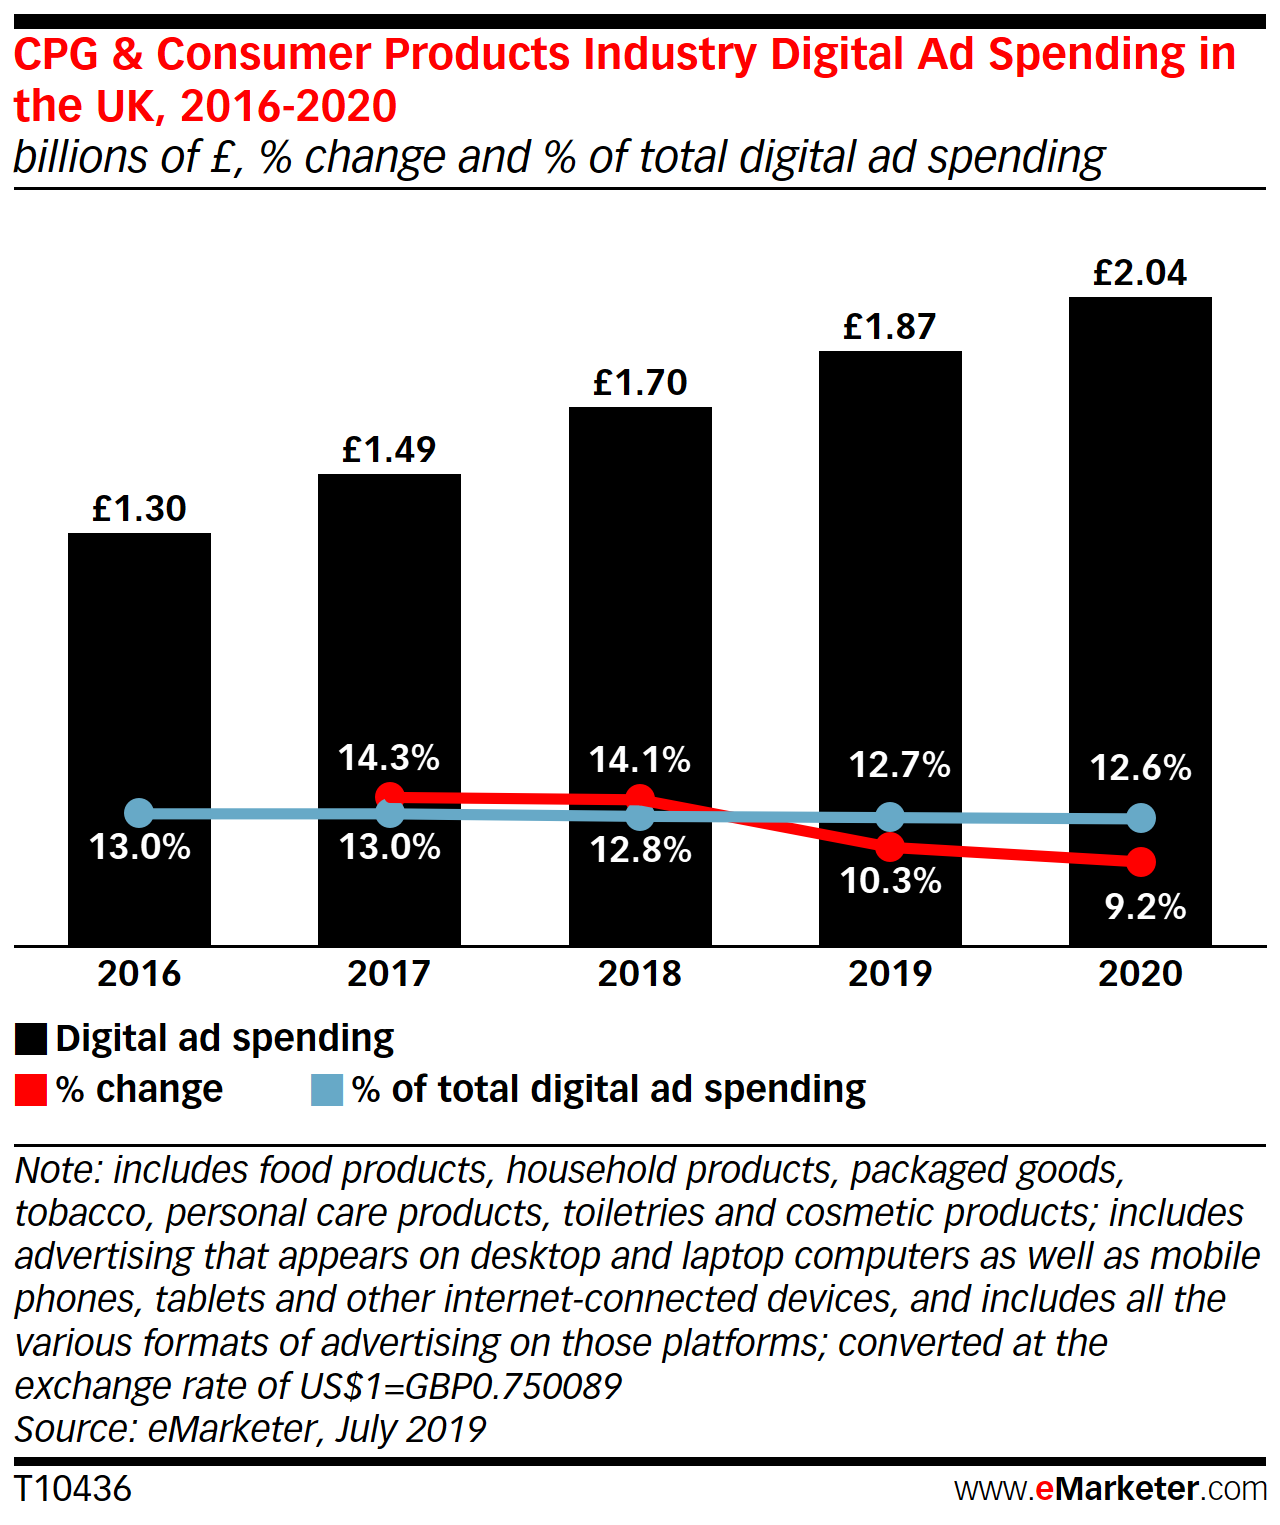 UK CPG Industry's Digital Ad Spending - eMarketer Trends, Forecasts & Statistics